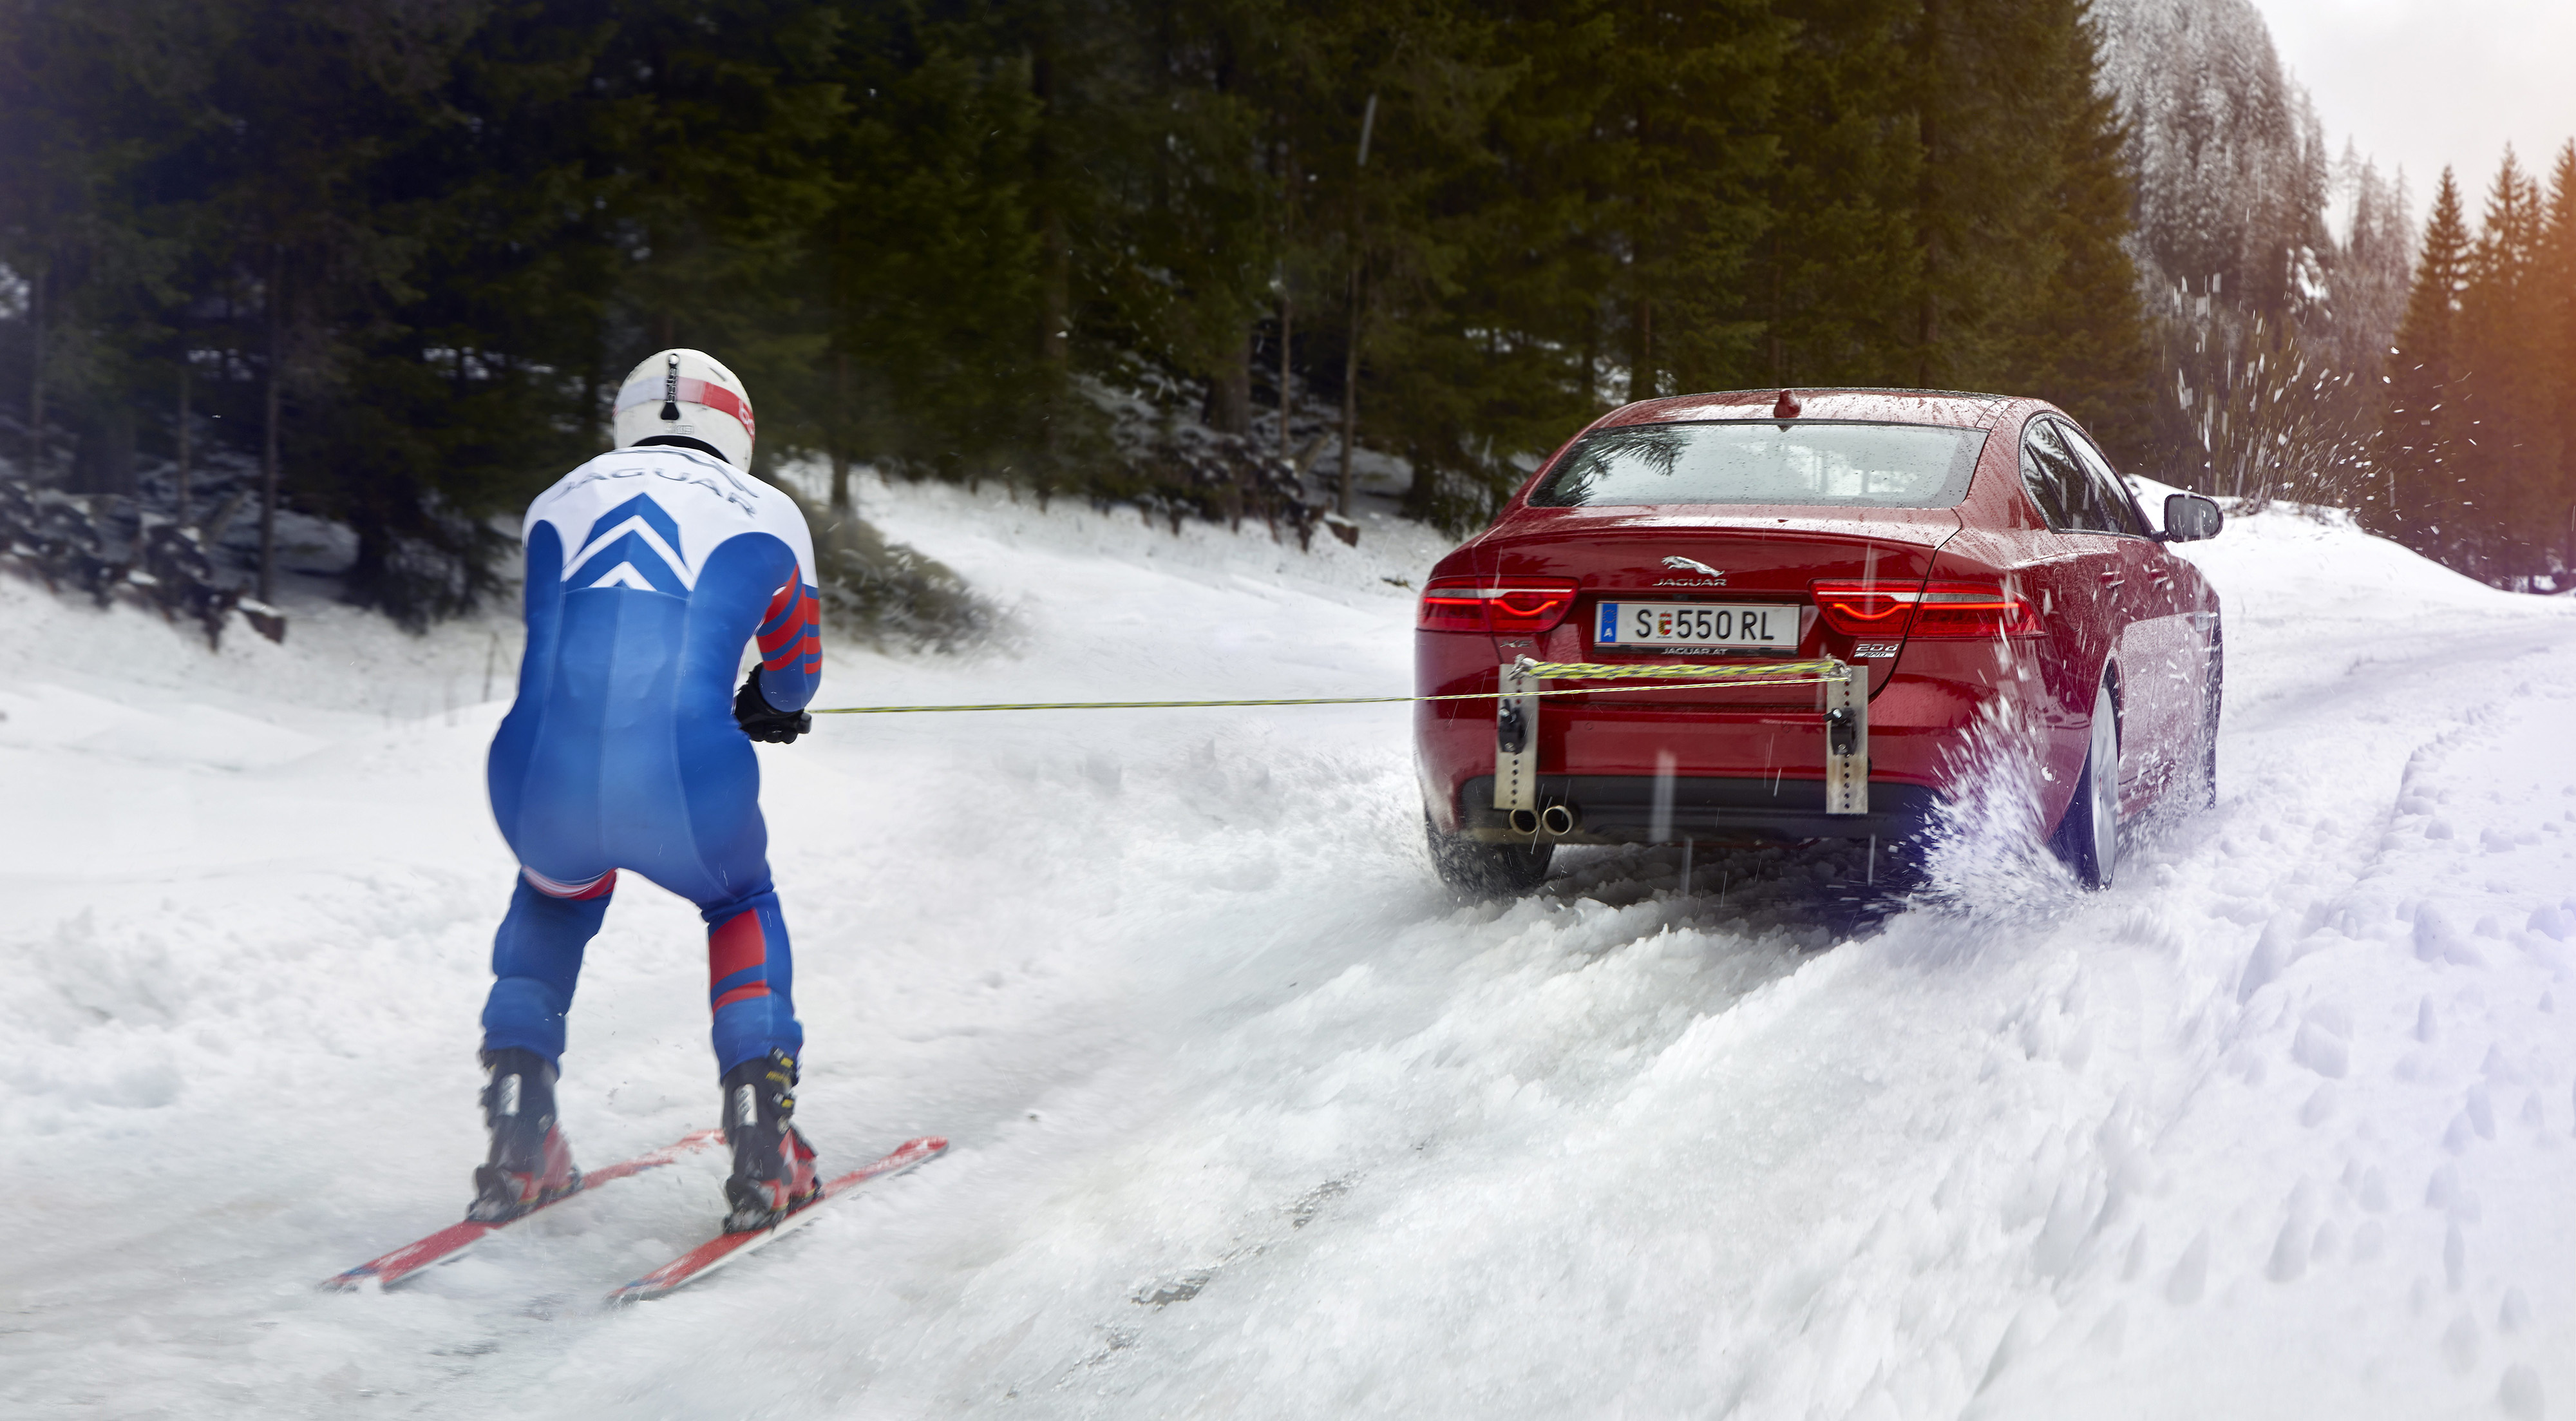 jaguar land rover and the jet-powered man - create the future